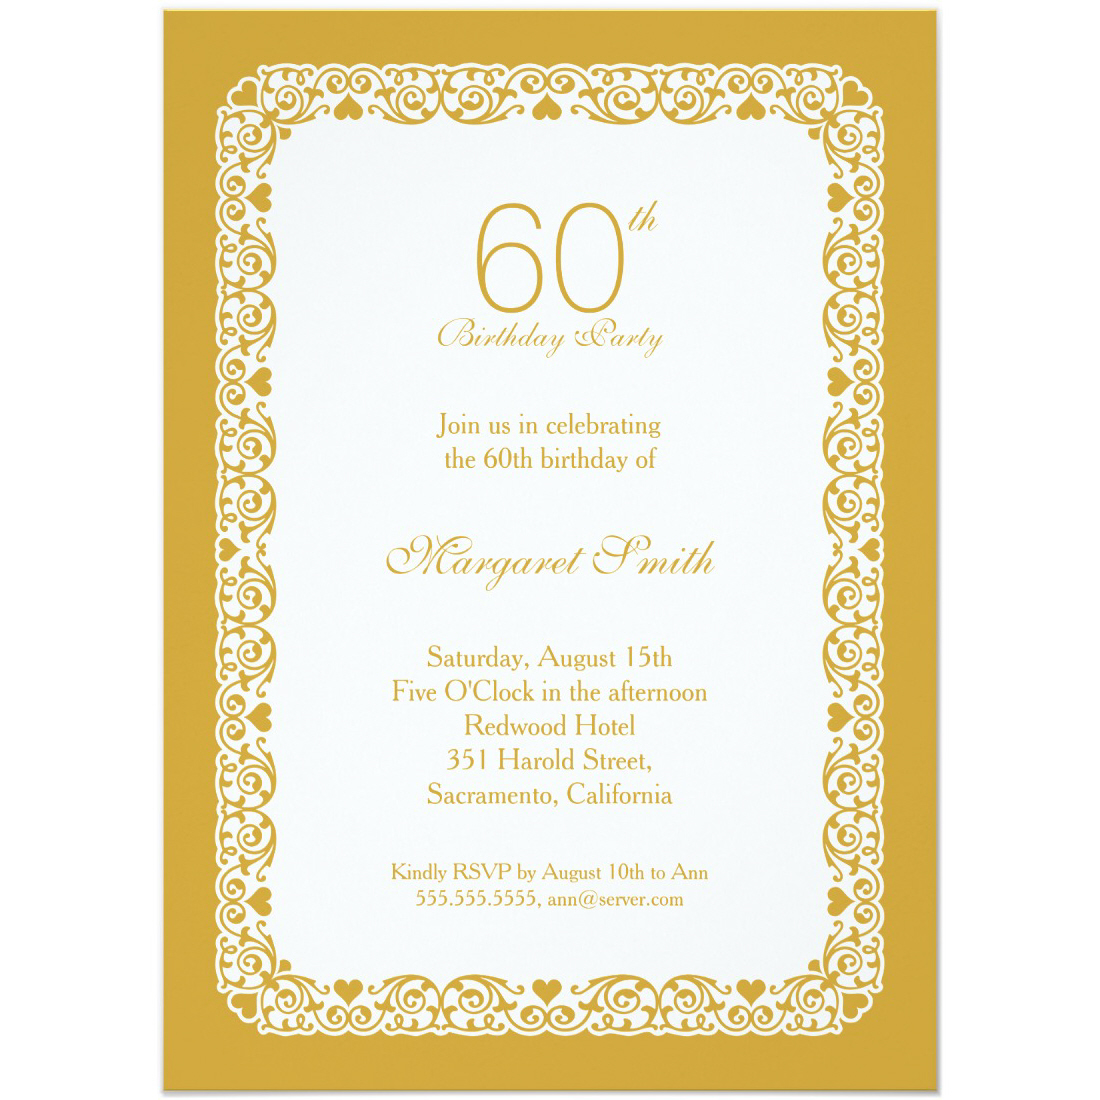 Elegant personalized 60th birthday party invitations – Invitations for 60th Birthday